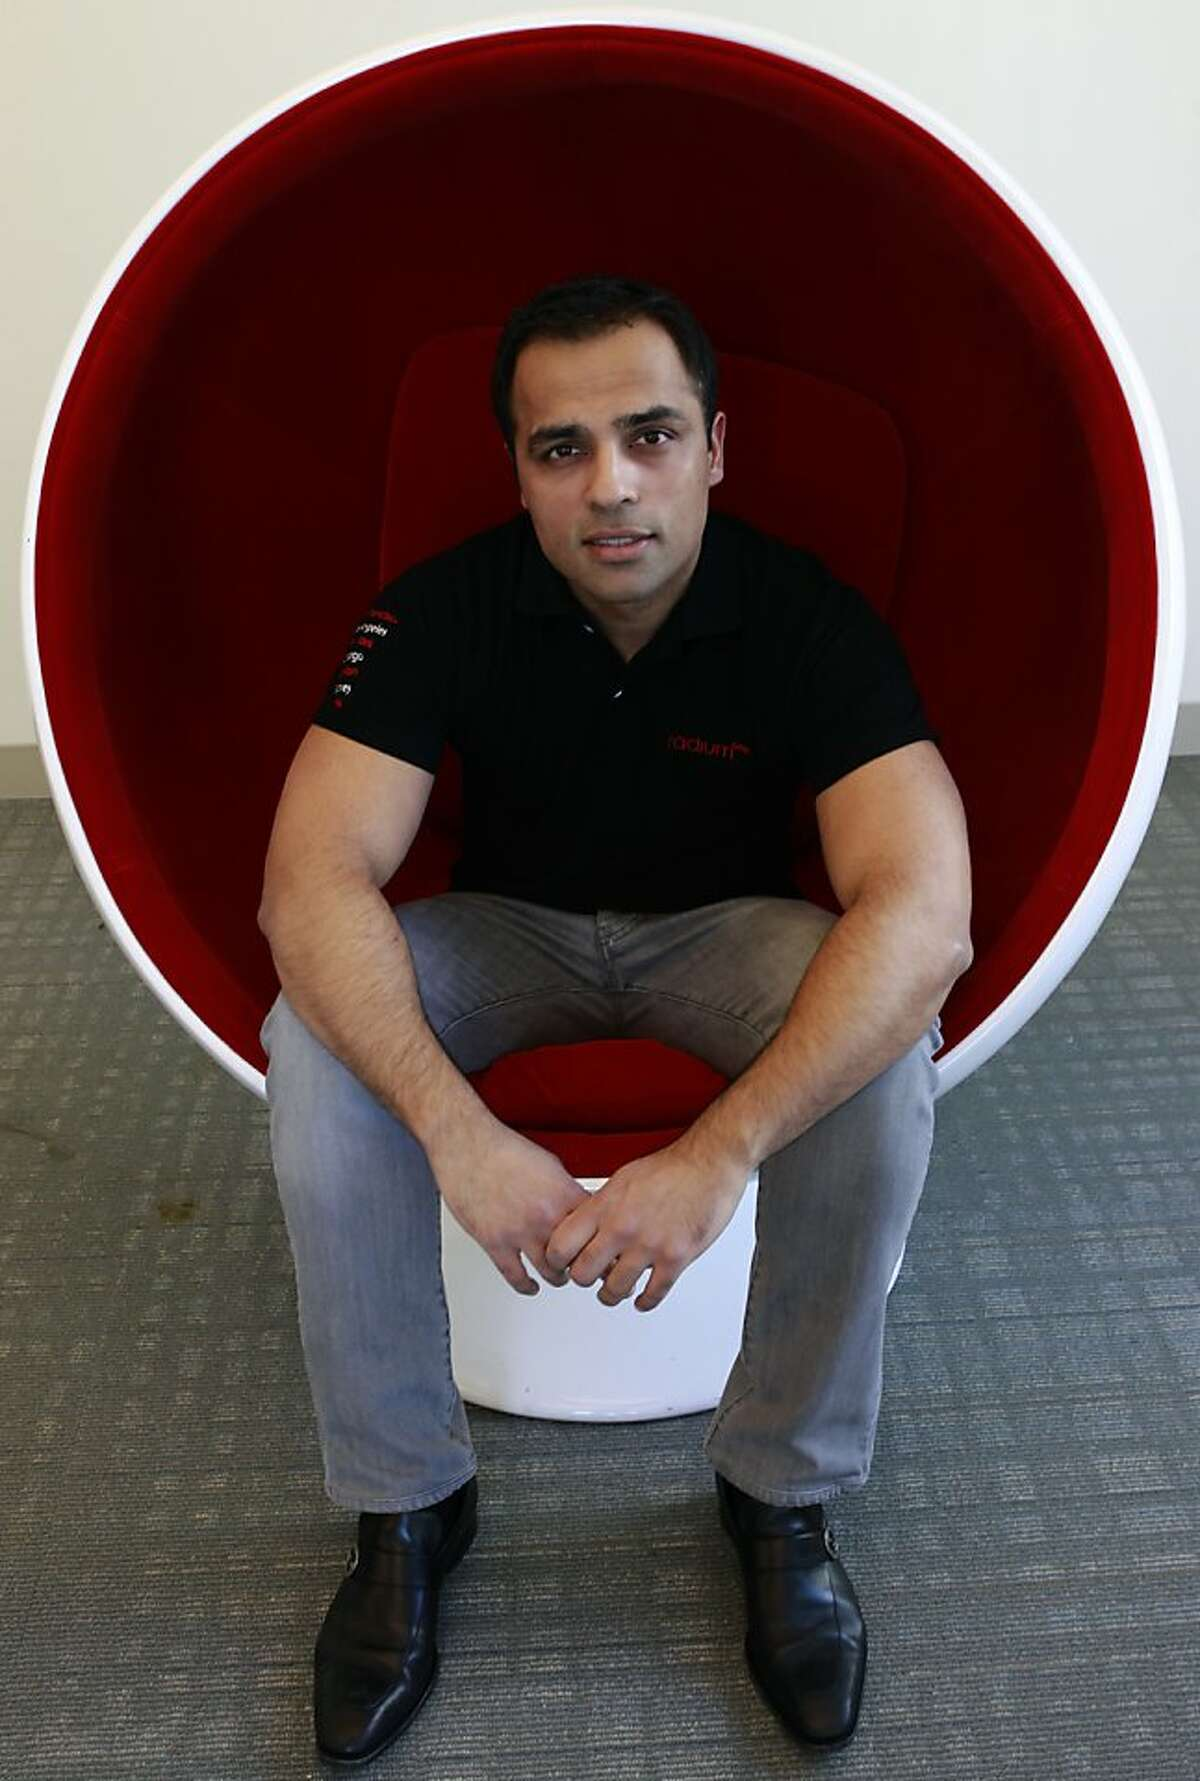 Gurbaksh Chahal, founder, chairman and CEO of online advertising company Radium One, is seen in the corporate offices in San Francisco, Calif. on Thursday, Nov. 1, 2012.